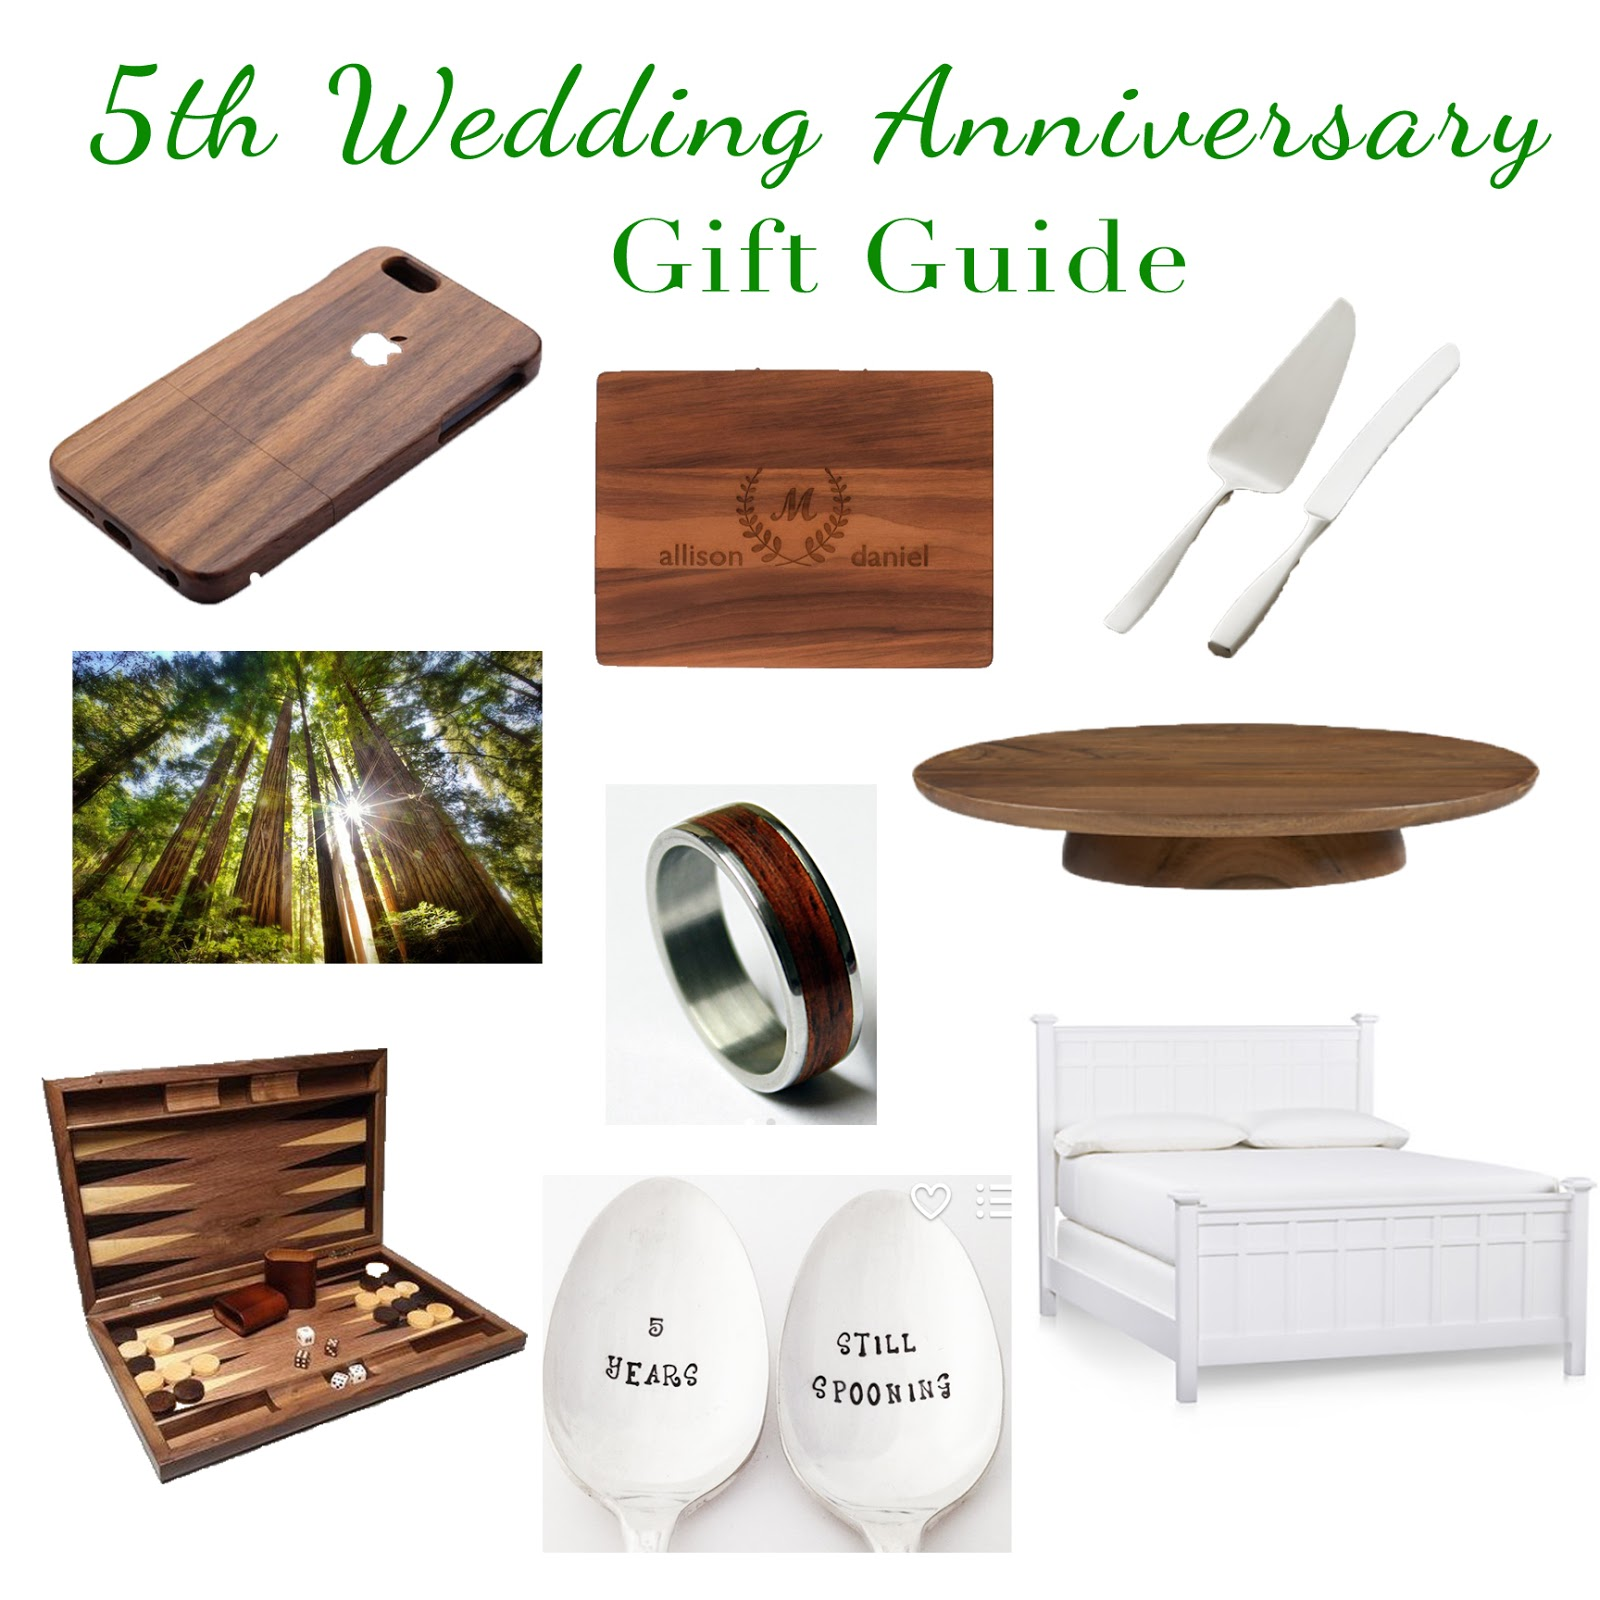 Gifts For Him For Wedding Anniversary: The Adventure Starts Here: 5th Wedding Anniversary Gift Ideas